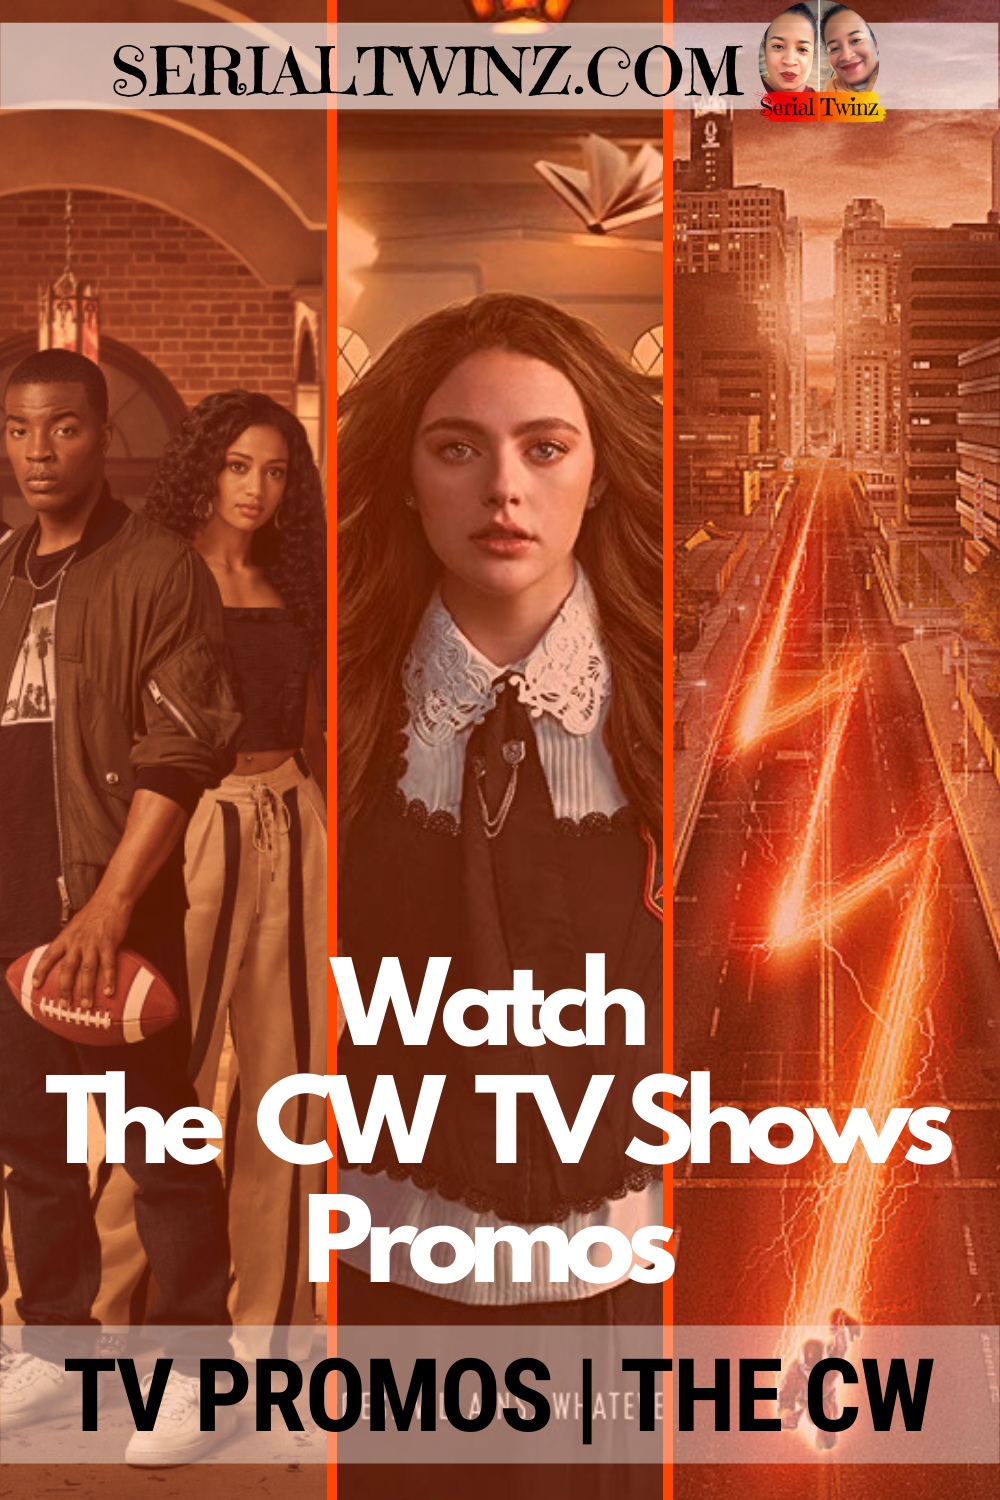 What's On The CW Feb 5-16 | TV Show Promos | Charmed, Katy Keene, Supergirl, Batwoman, The Flash...